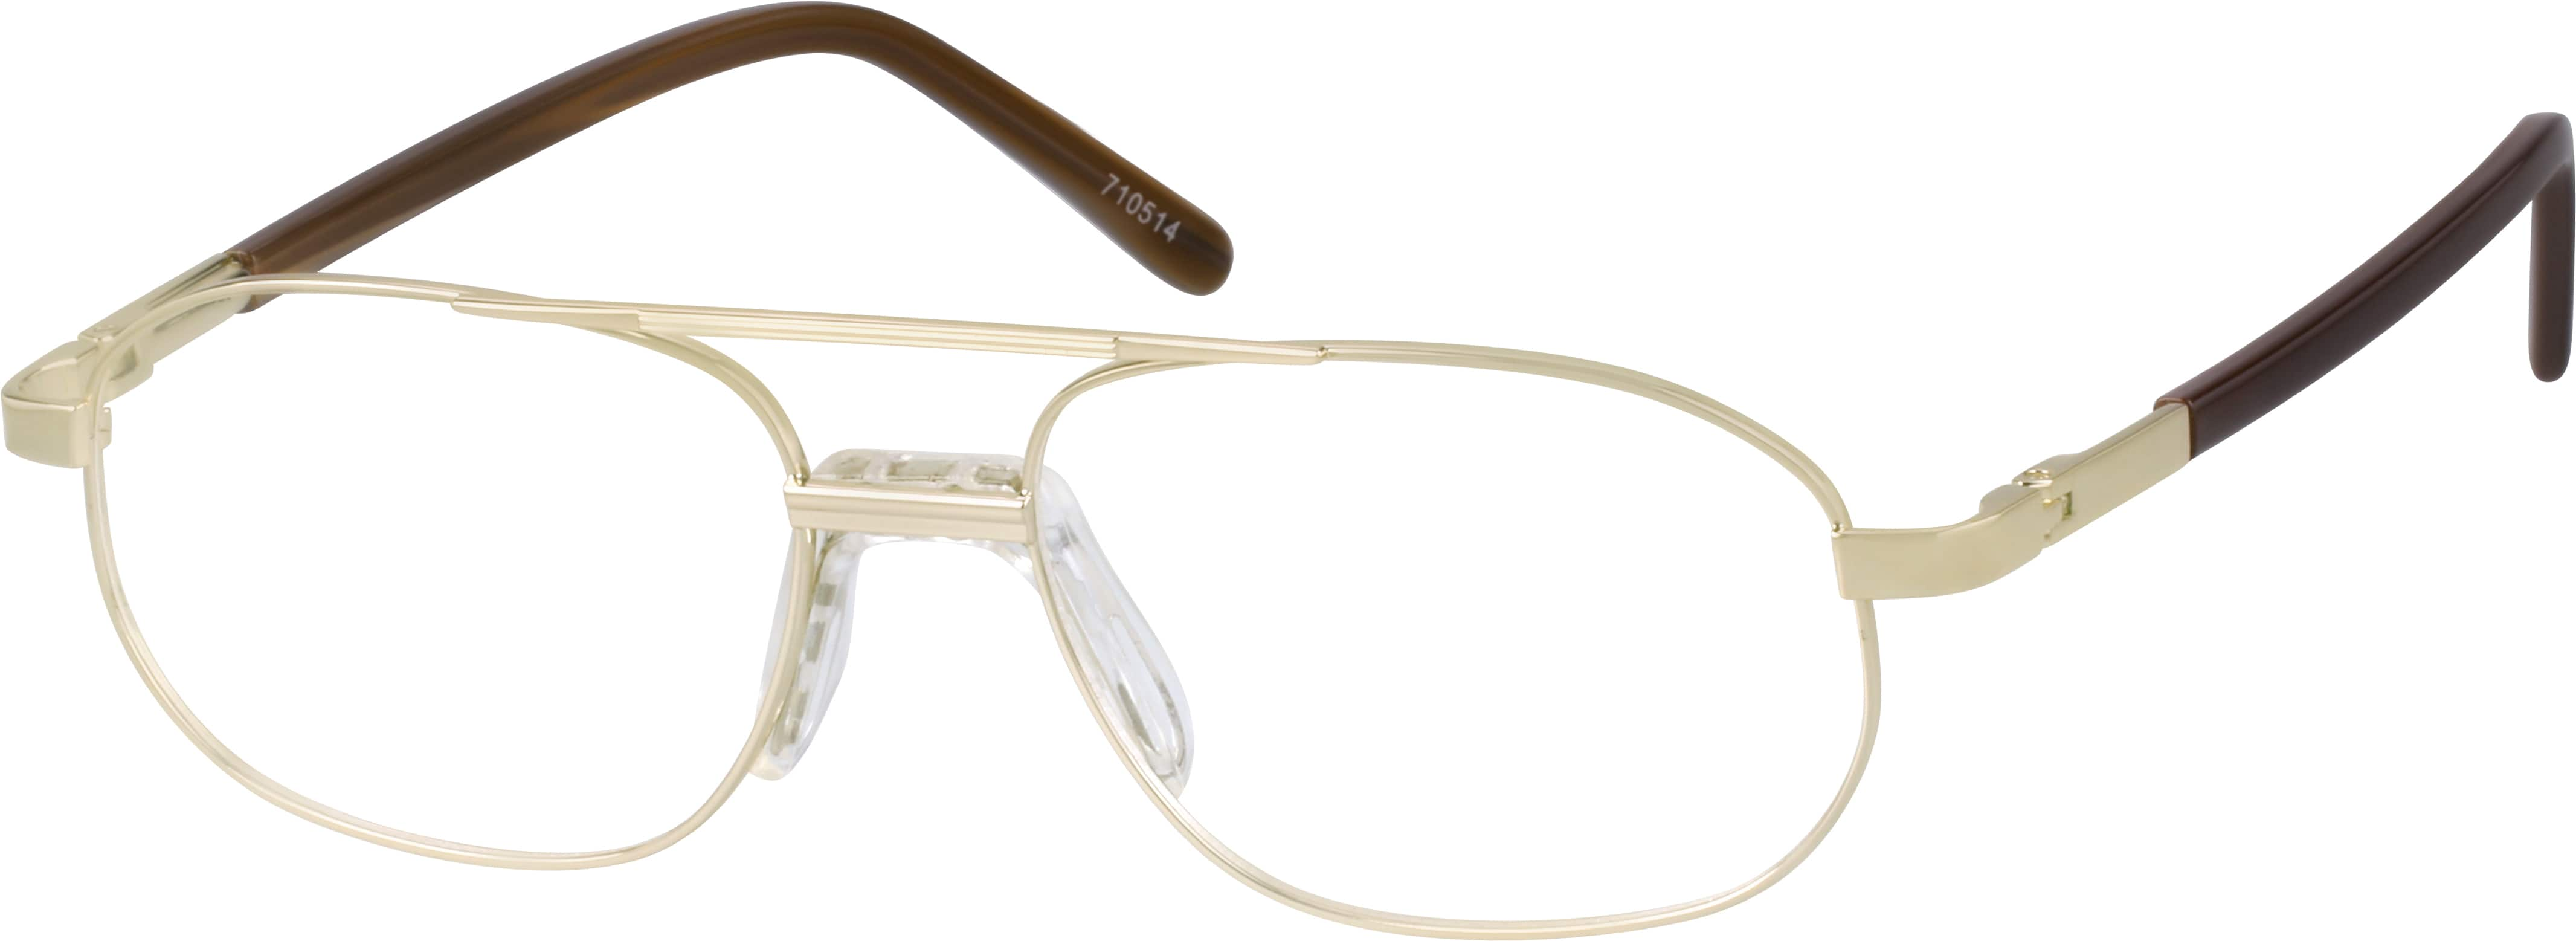 710514-metal-alloy-full-rim-frame-with-saddle-bridge